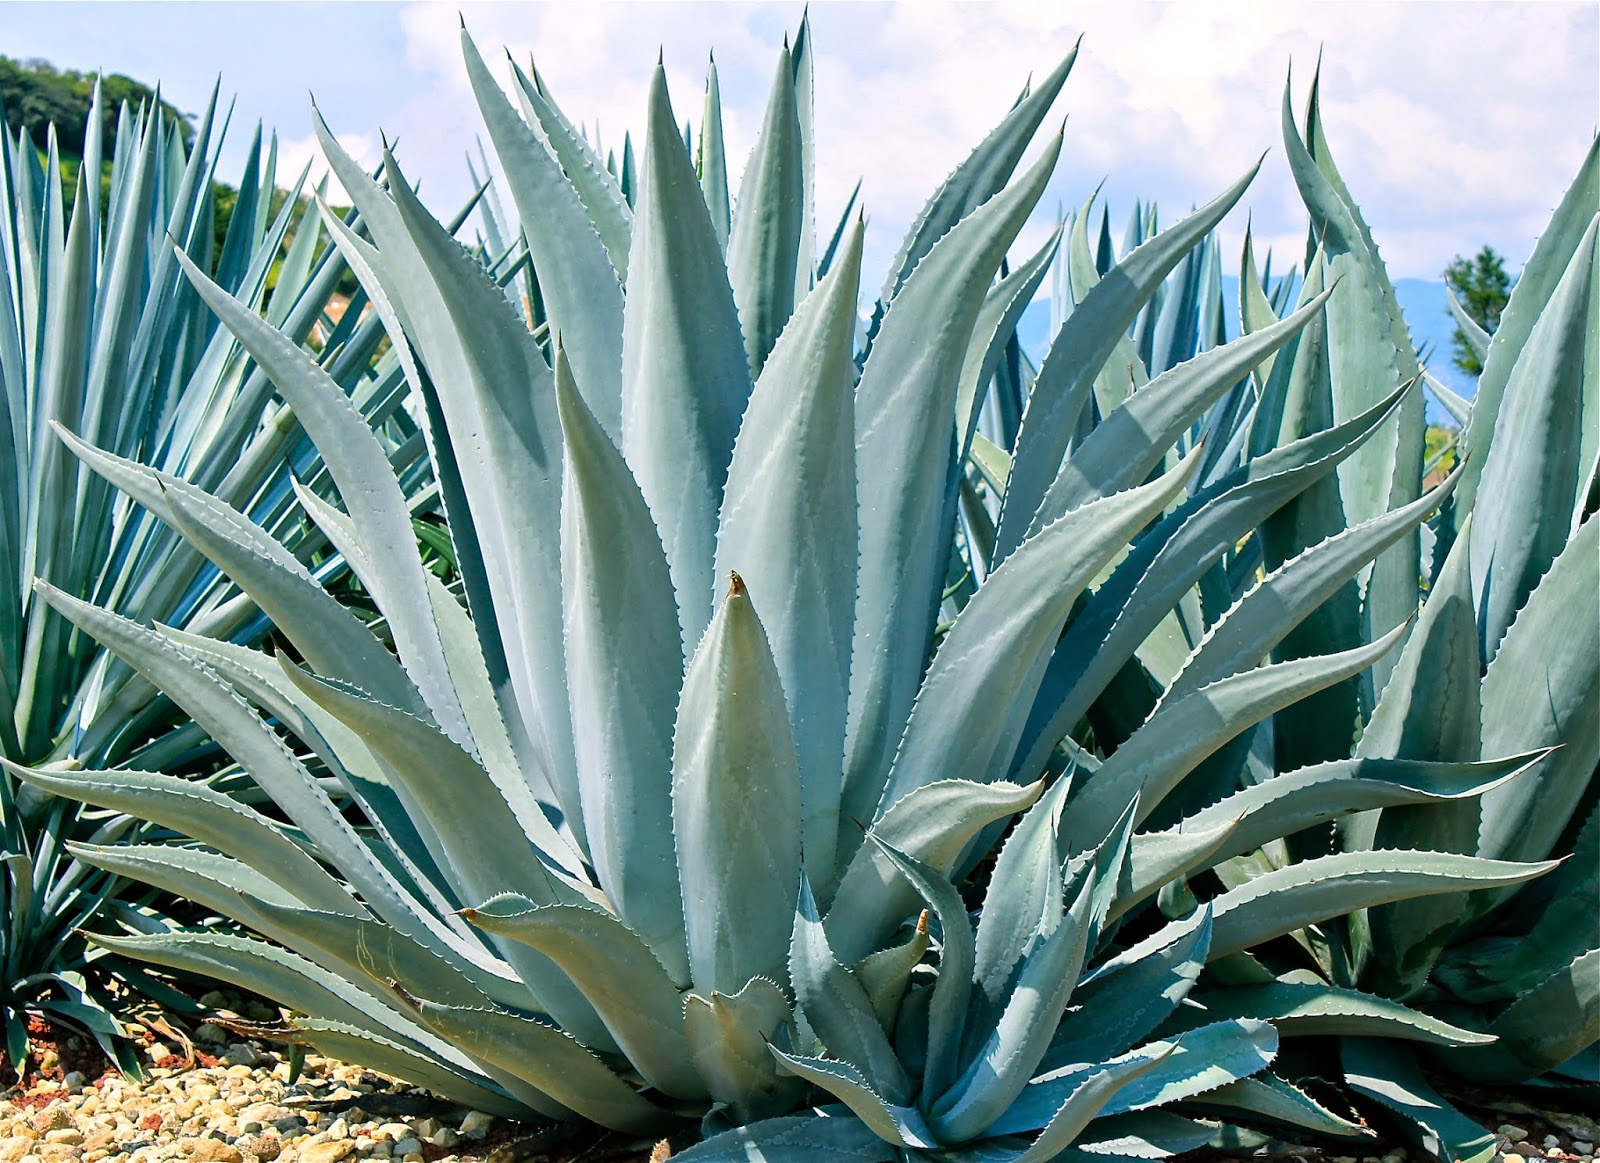 Blue Agave Tequila Plant The Savvy Guyde...